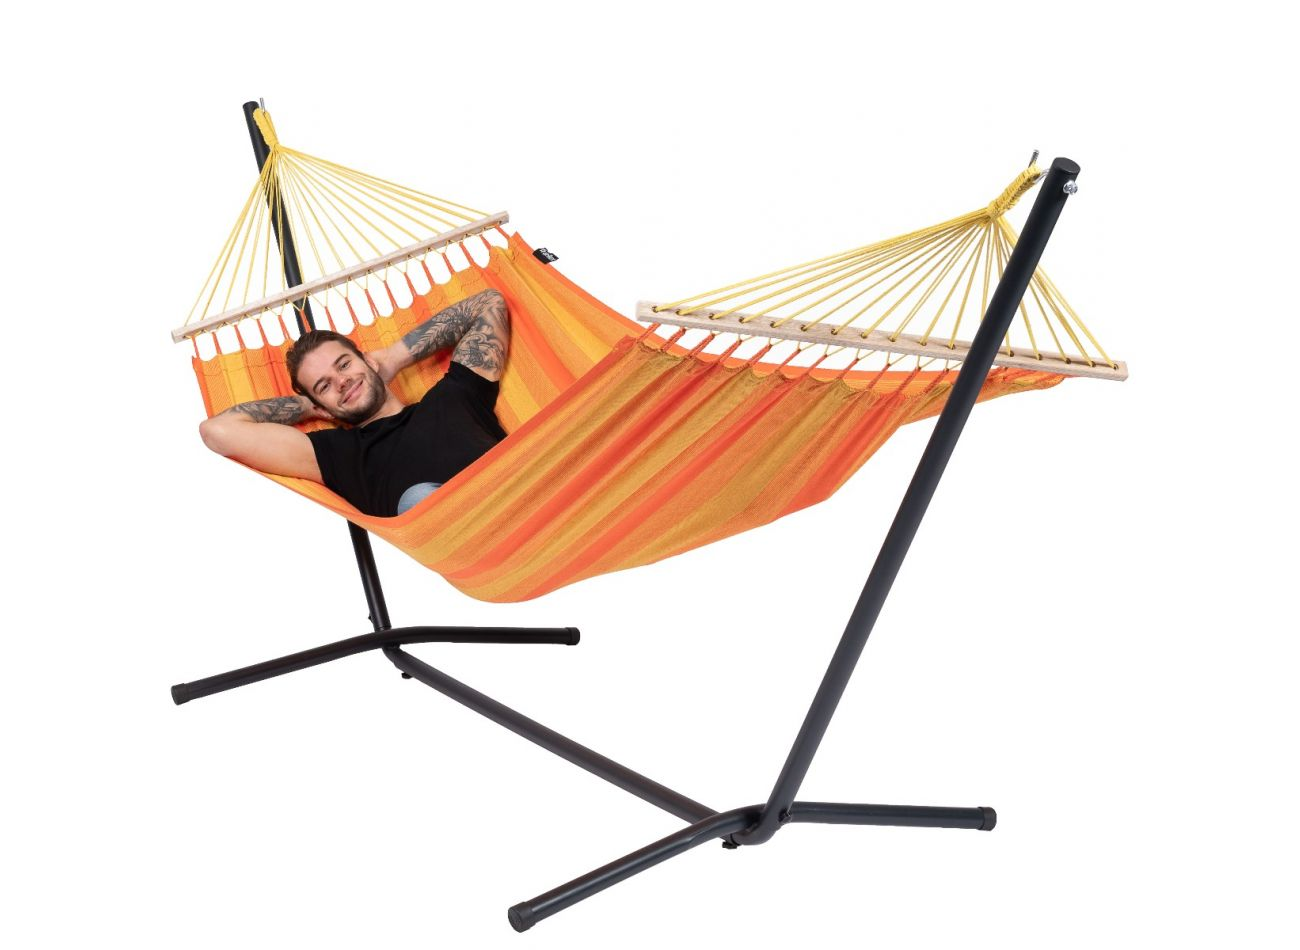 Hängematte mit Gestell 1 Person Easy & Relax Orange